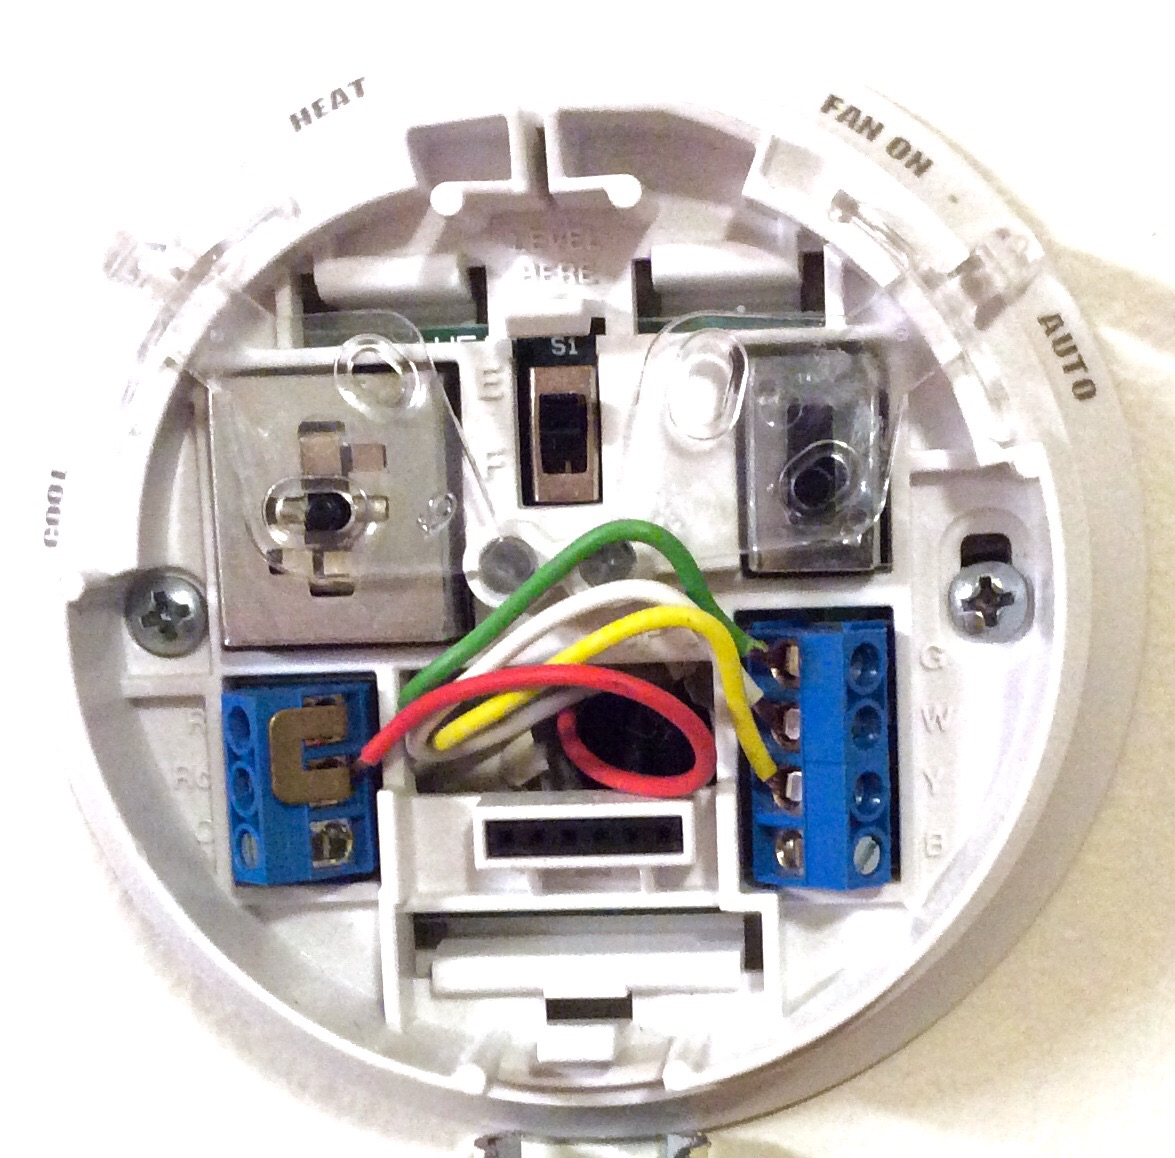 Honeywell Thermostat Wiring Diagram 4 Wire Toms Tek Stop Typical Picture Of The Commonly Used Green White